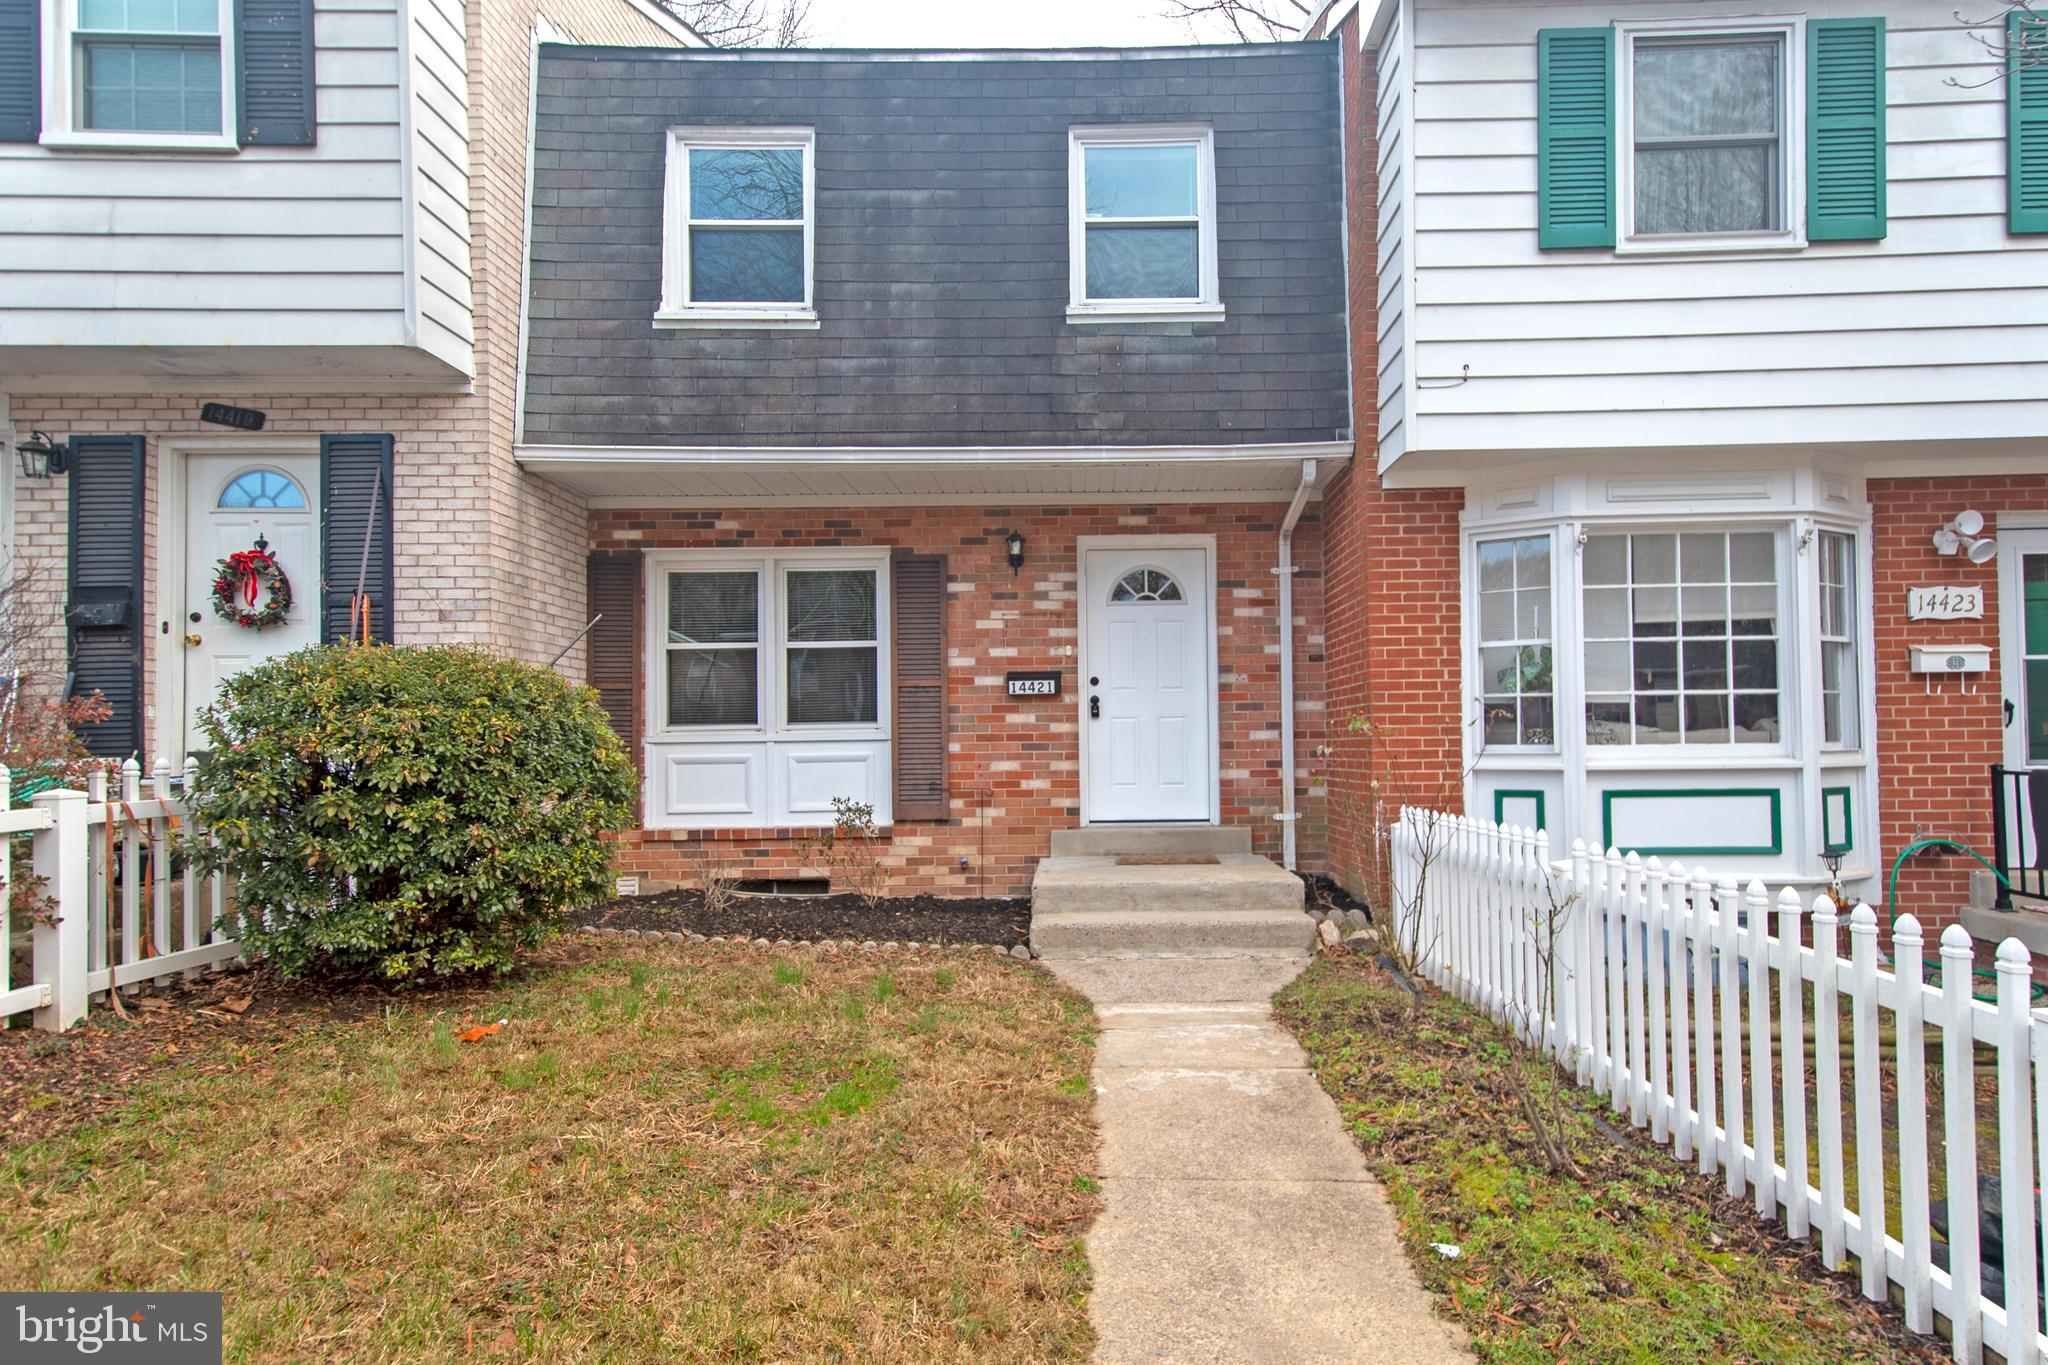 MOVE NOW! UPGRADES! Drenched in SUNLIGHT, Gorgeous HARDWOODS, STUNNING Gourmet Kitchen with STAINLESS/GRANITE! Finished Rec Room with Decorative Fireplace WALKS OUT TO PEACEFUL TRANQUILITY of Grassy Common Grounds. QUIET Non-thru Street, Minutes to I-95 and PRTC Transit Center.